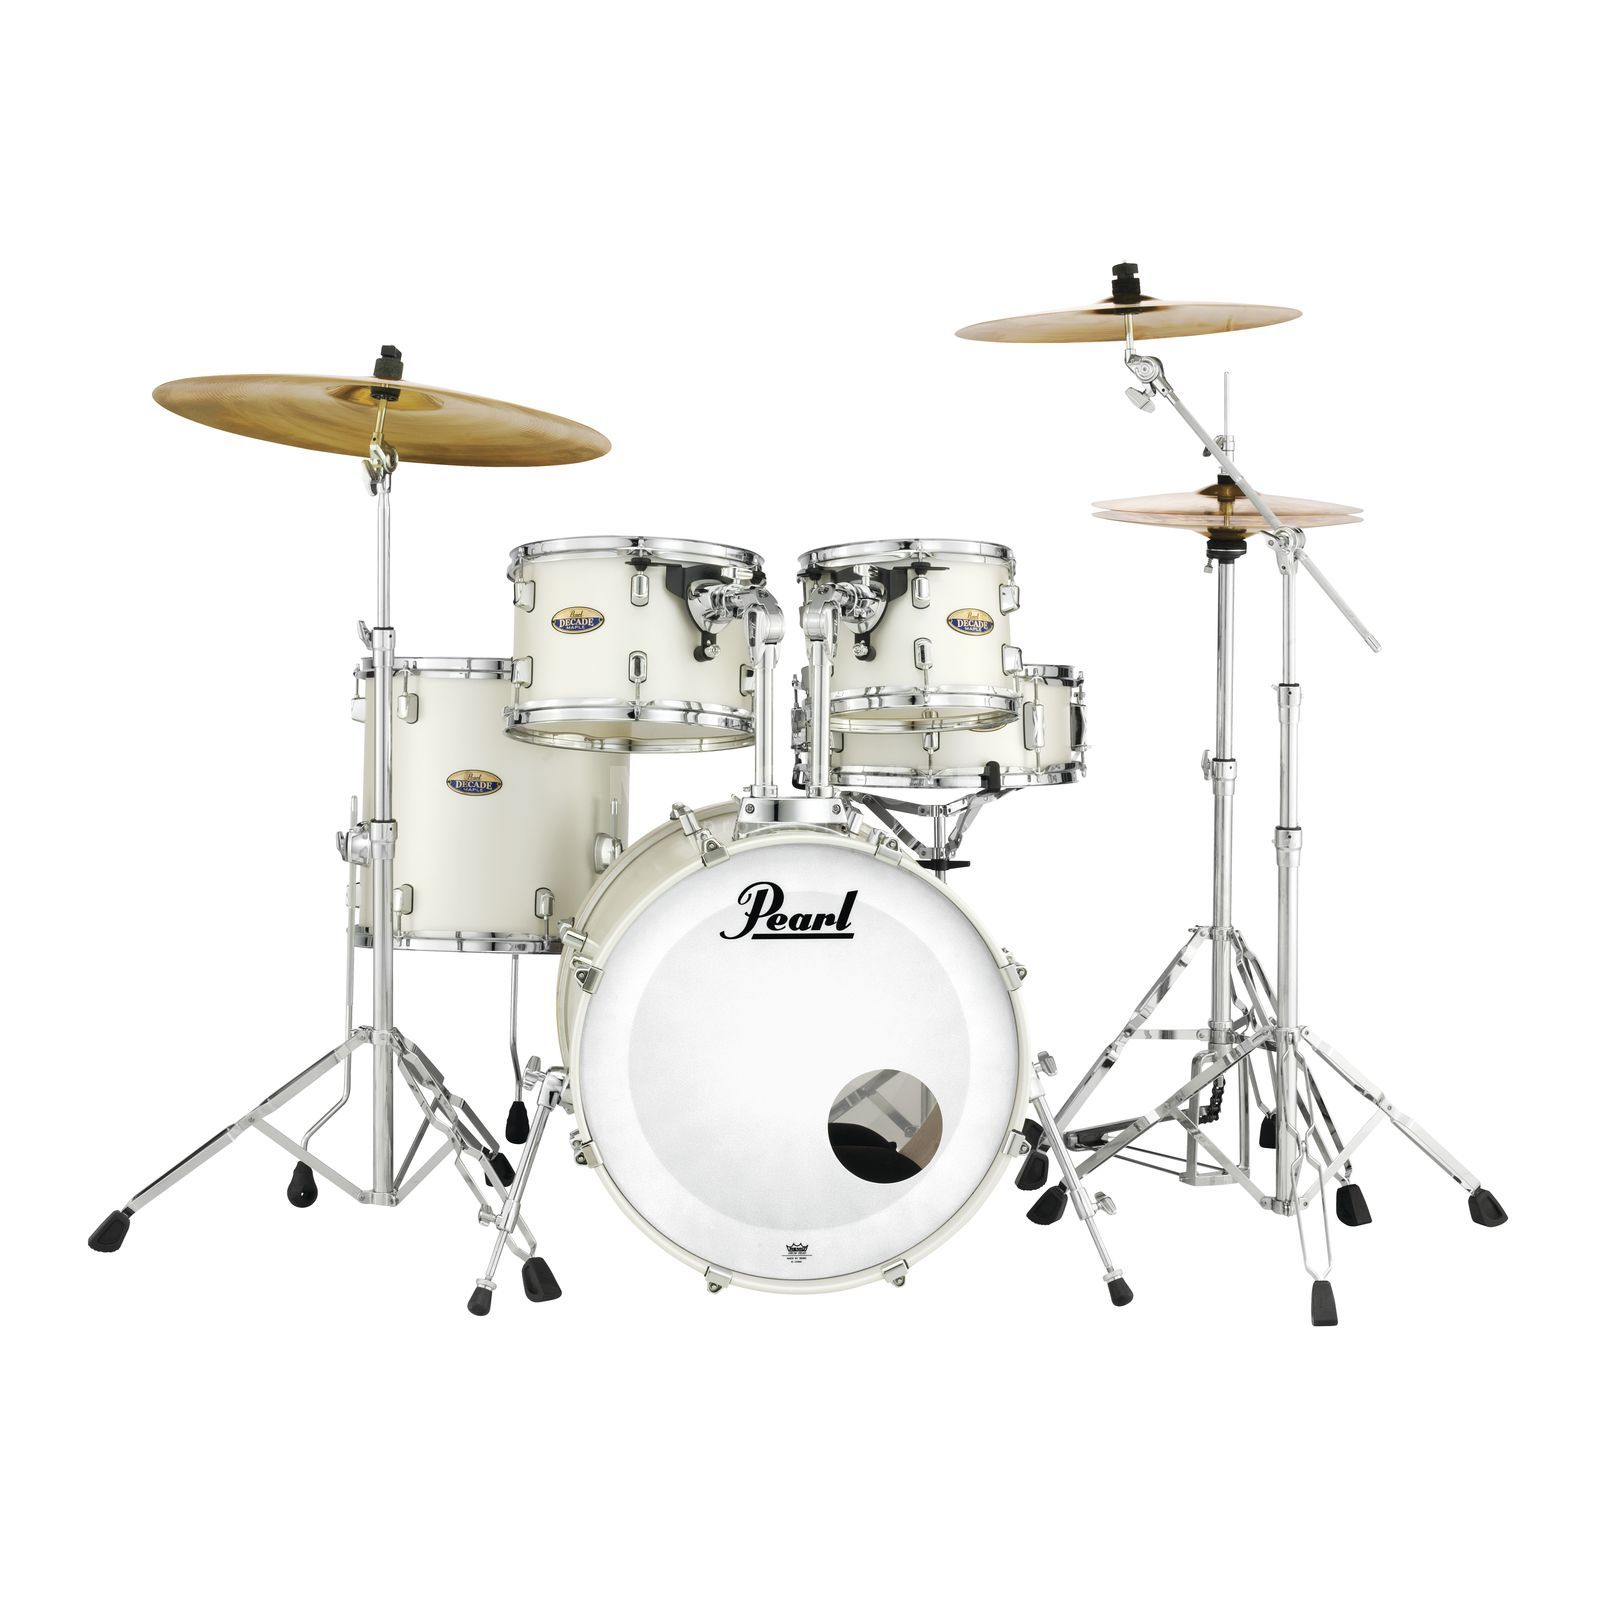 Pearl Decade Maple DMP905/C, White Satin Pearl #229 Image du produit